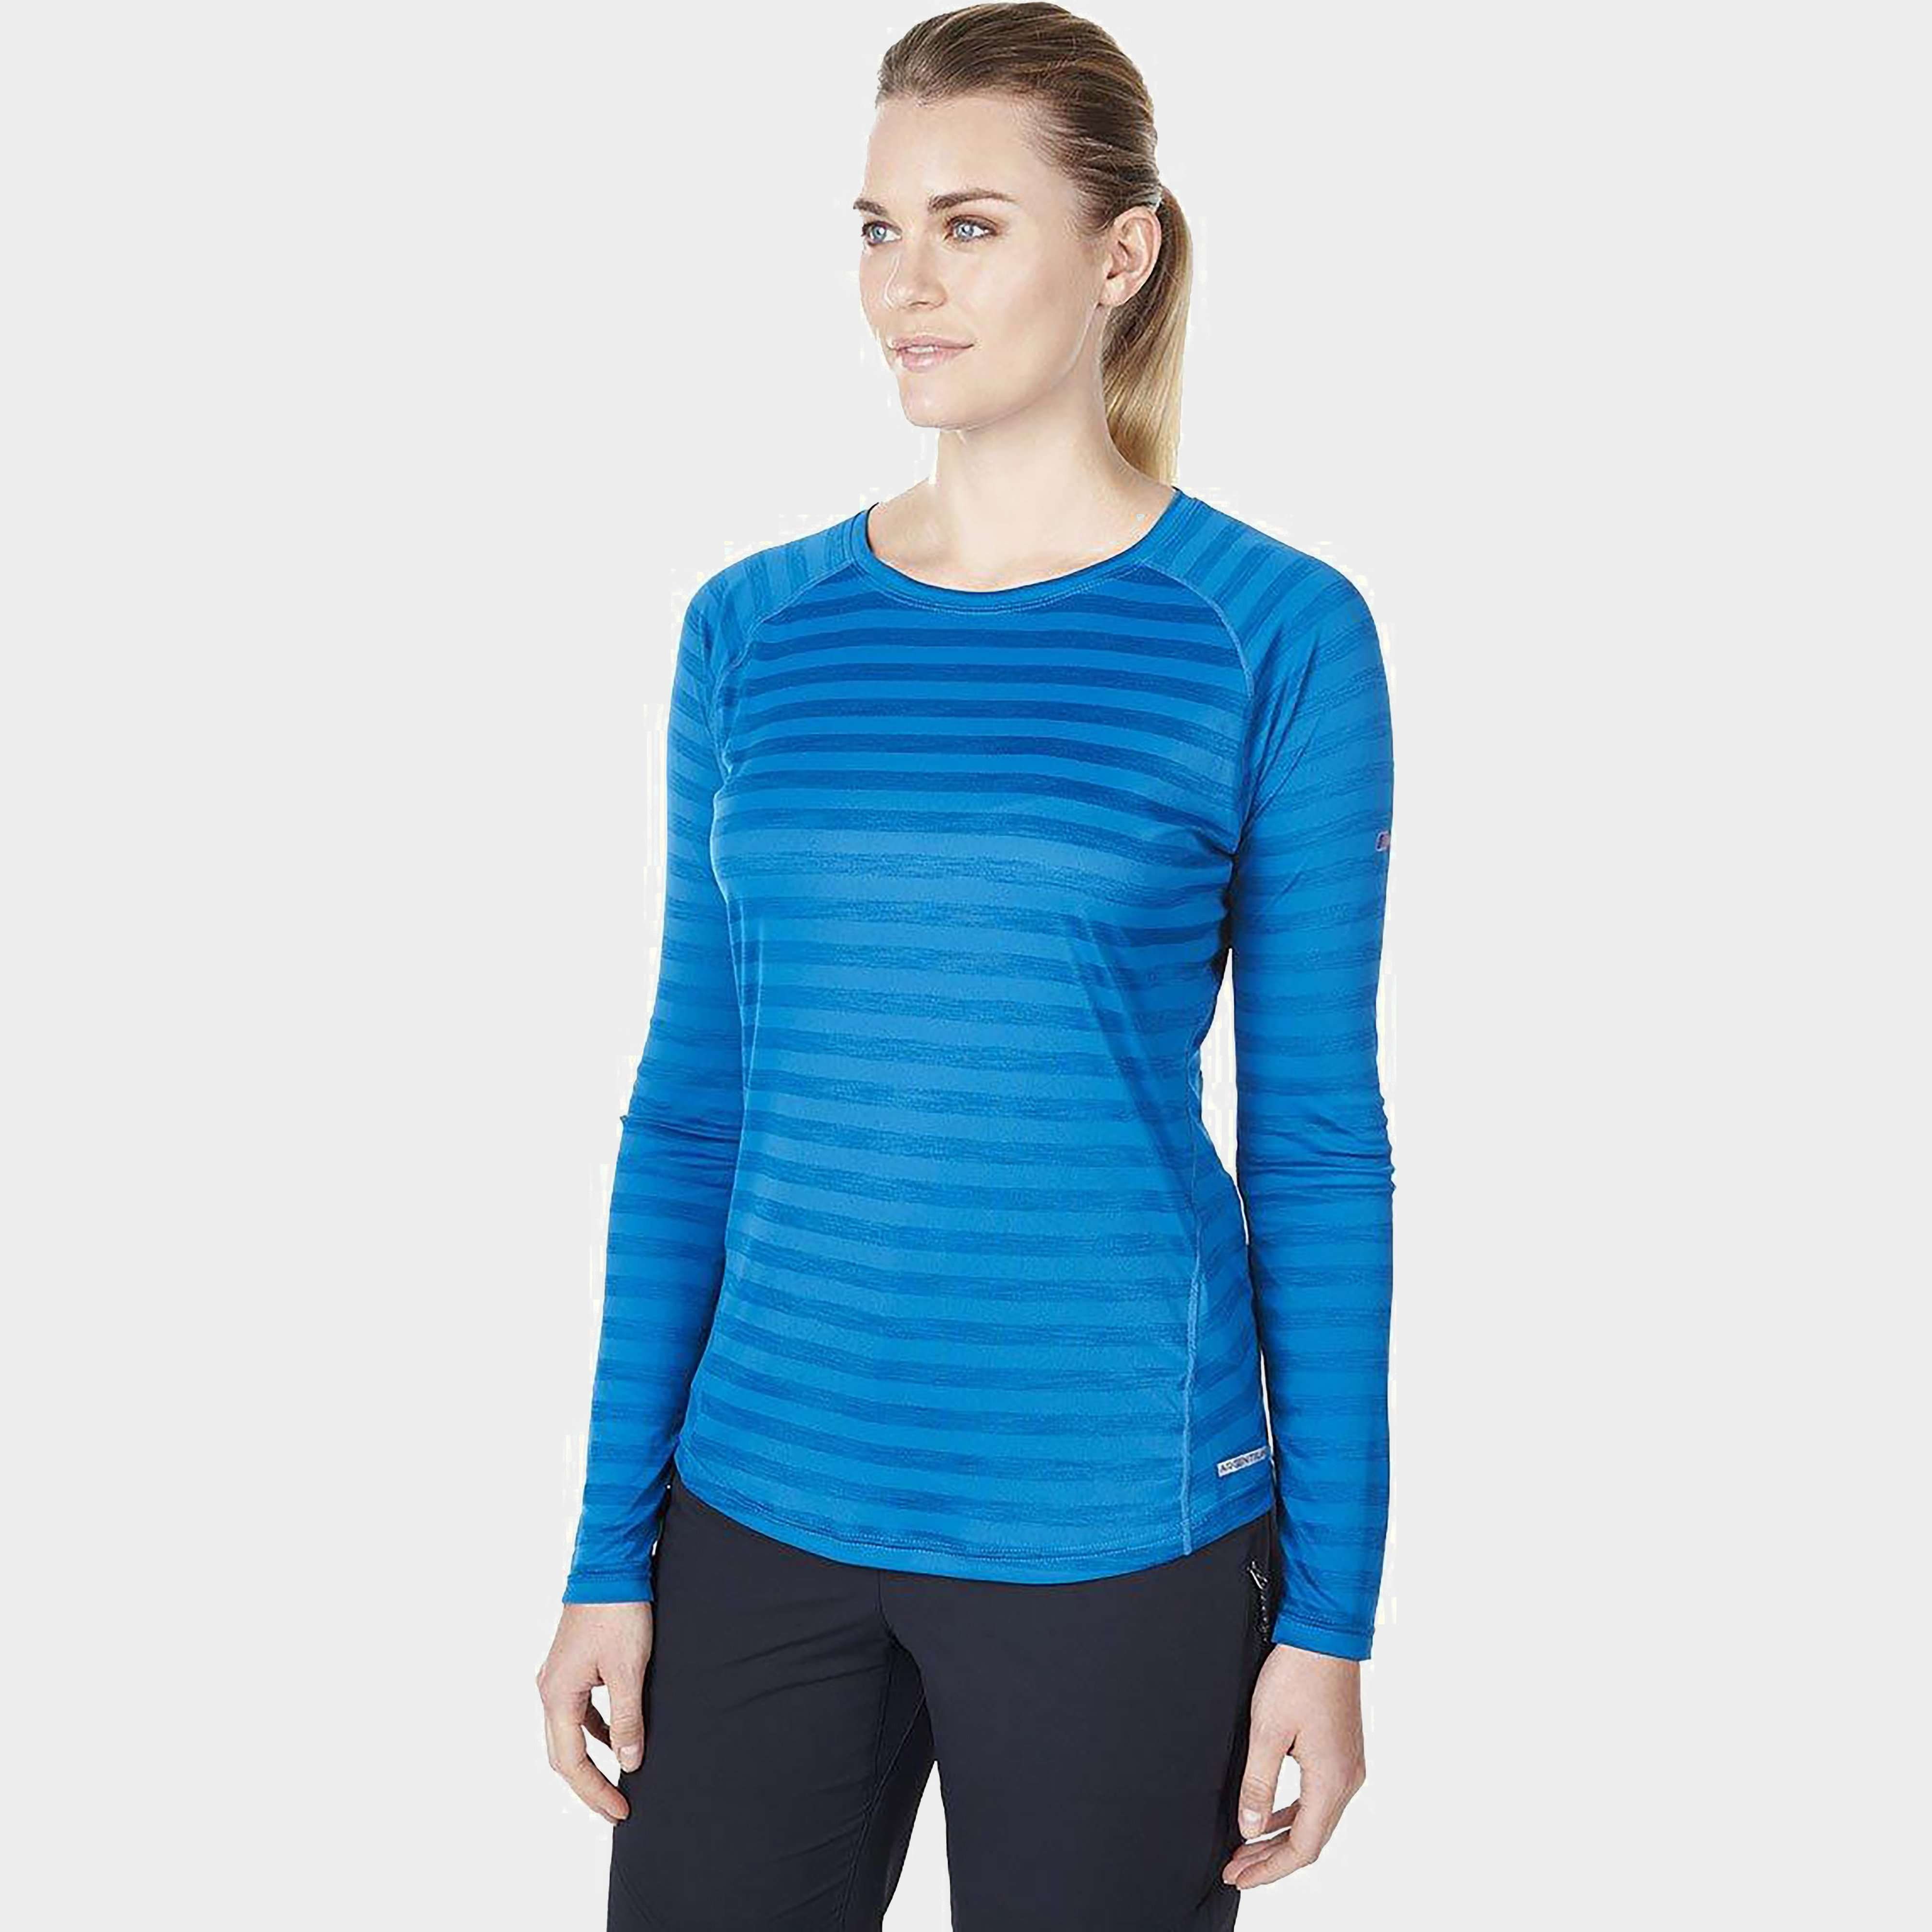 BERGHAUS Women's Striped Tech Long Sleeve T-Shirt